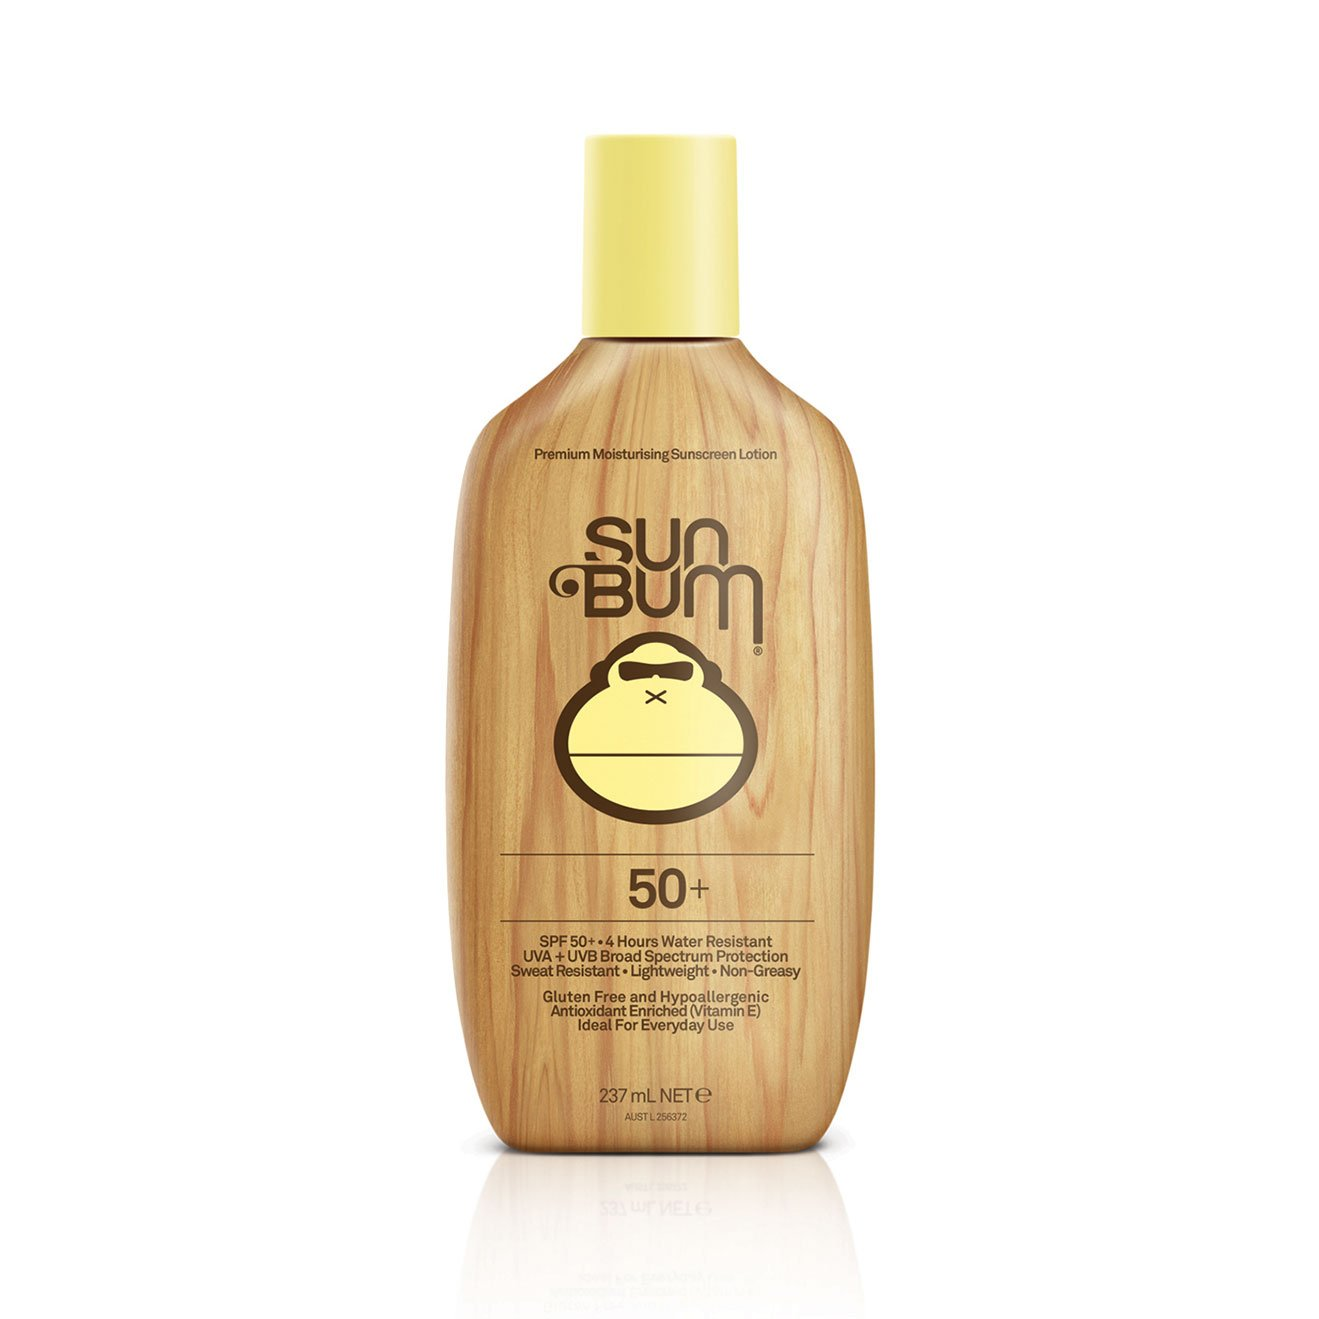 Sun Bum Original SPF 50+ Lotion 237ml